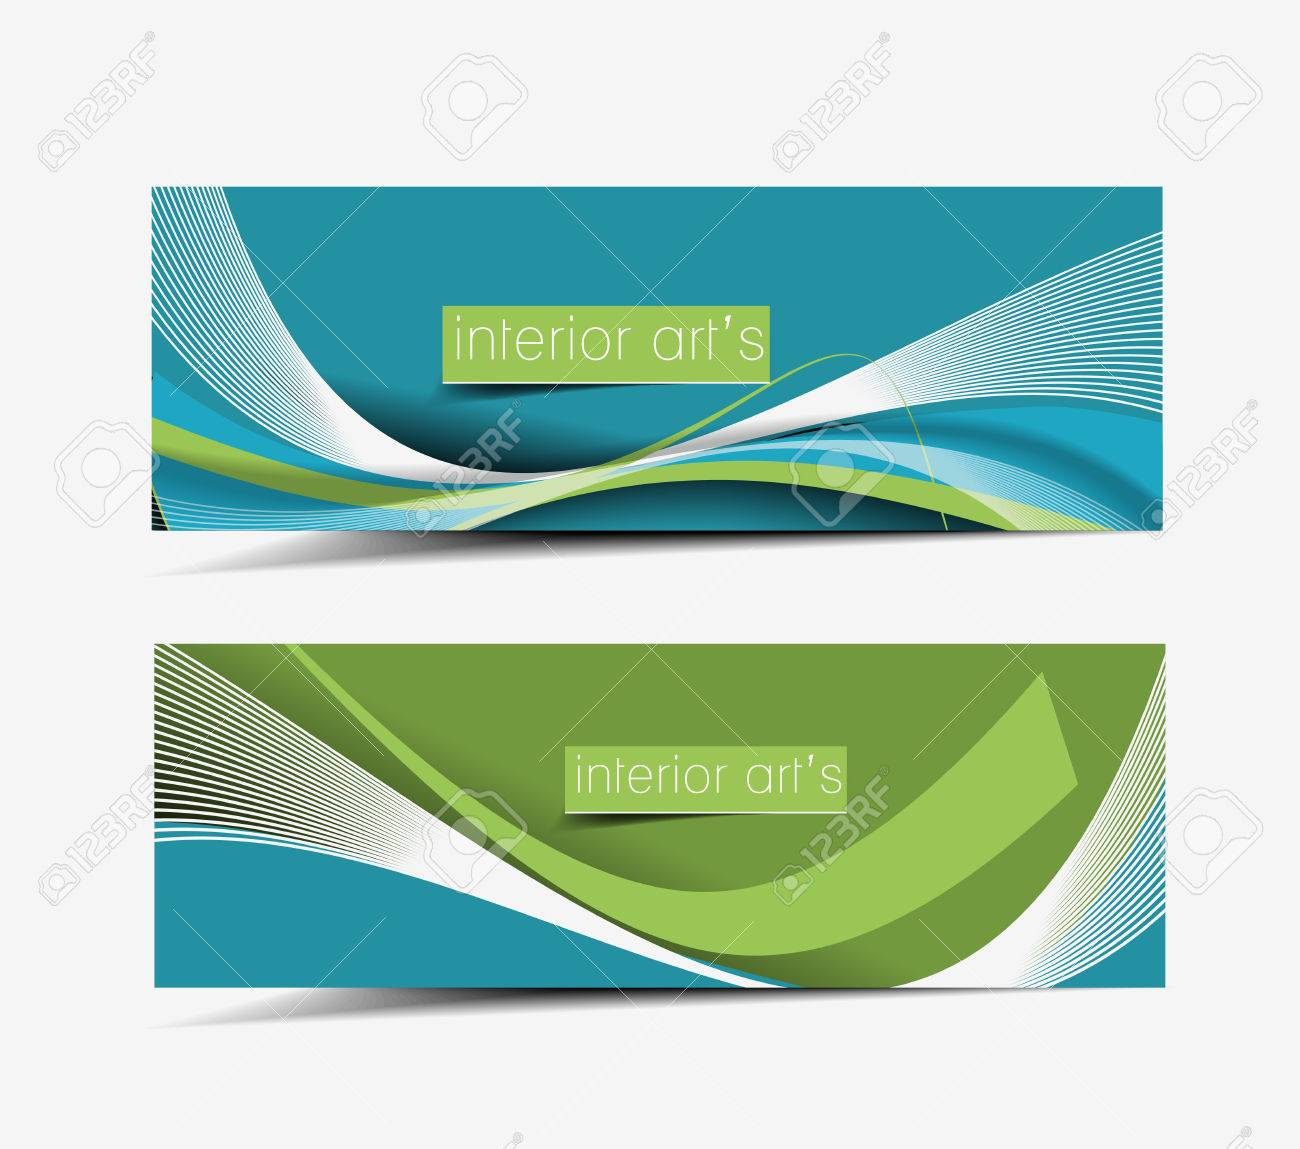 Real Estate Web Banner & Header Layout Template. Royalty Free ...